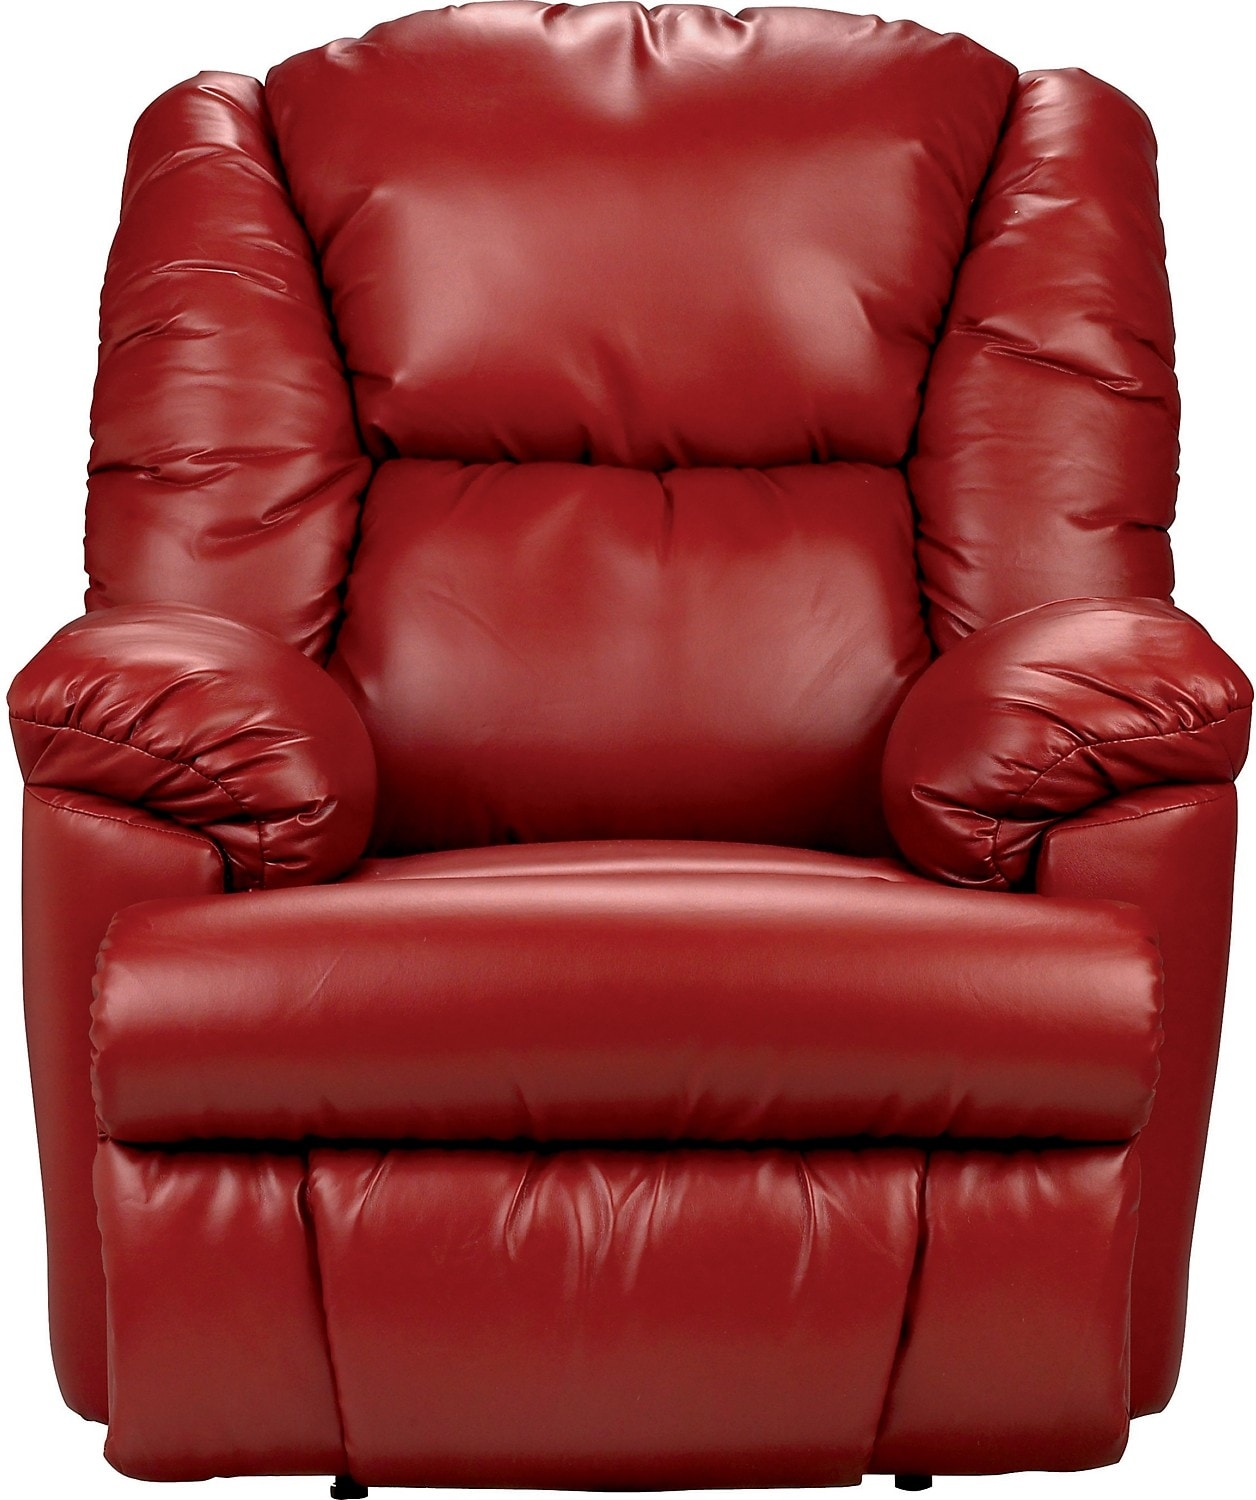 Bmaxx Bonded Leather Power Reclining Chair – Red